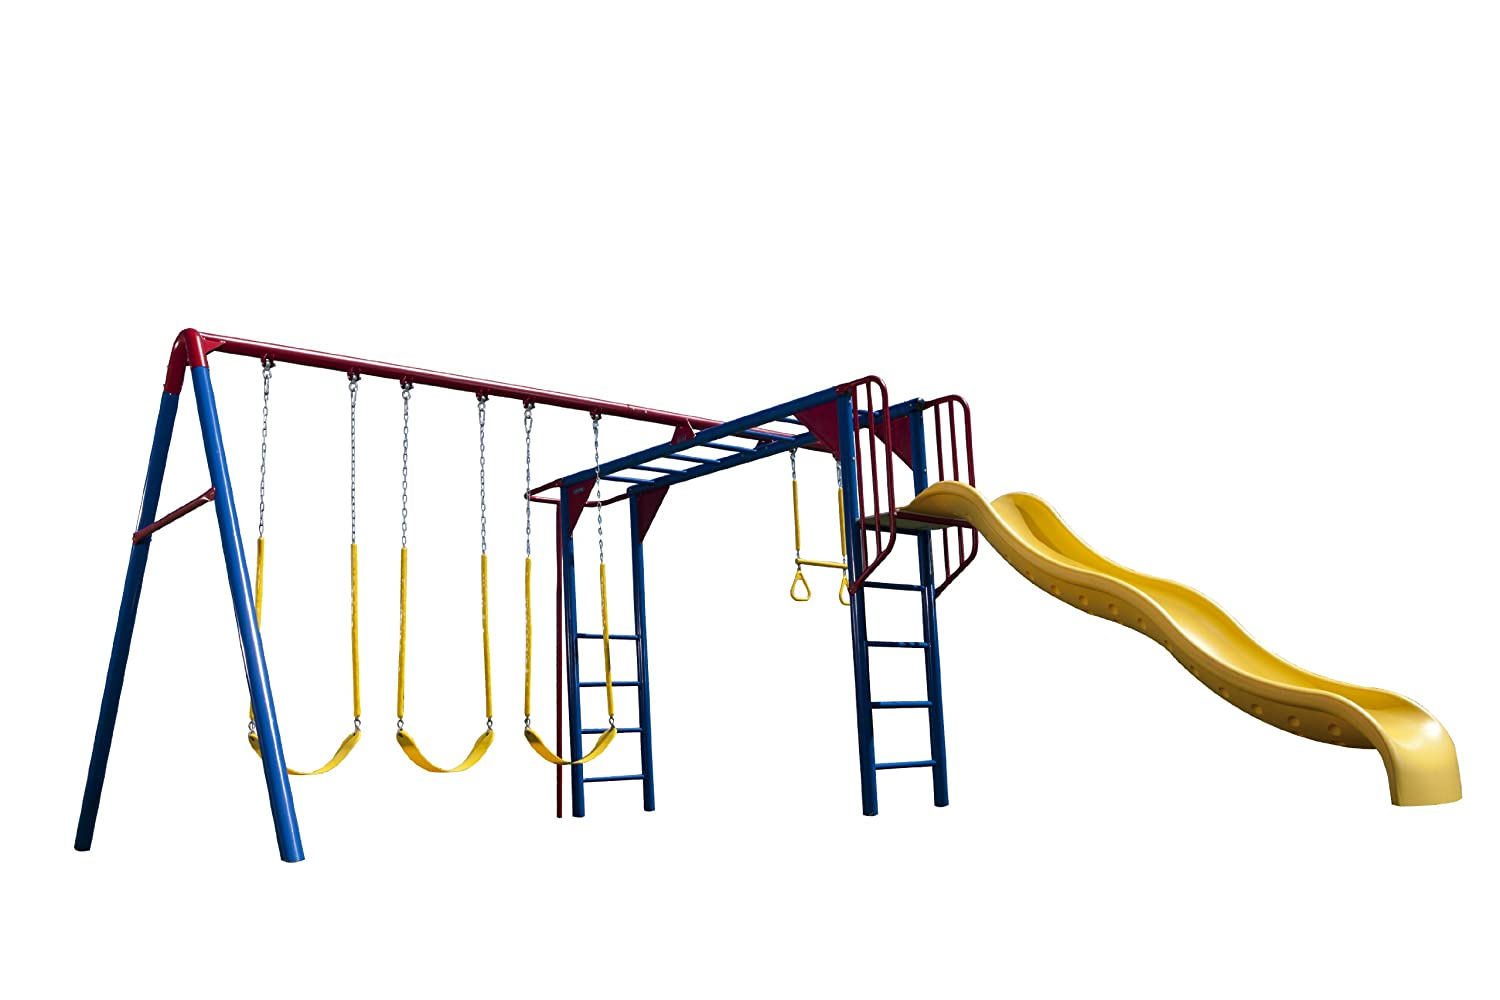 The Best Swing Set (Top 4 Reviewed) | The Smart Consumer